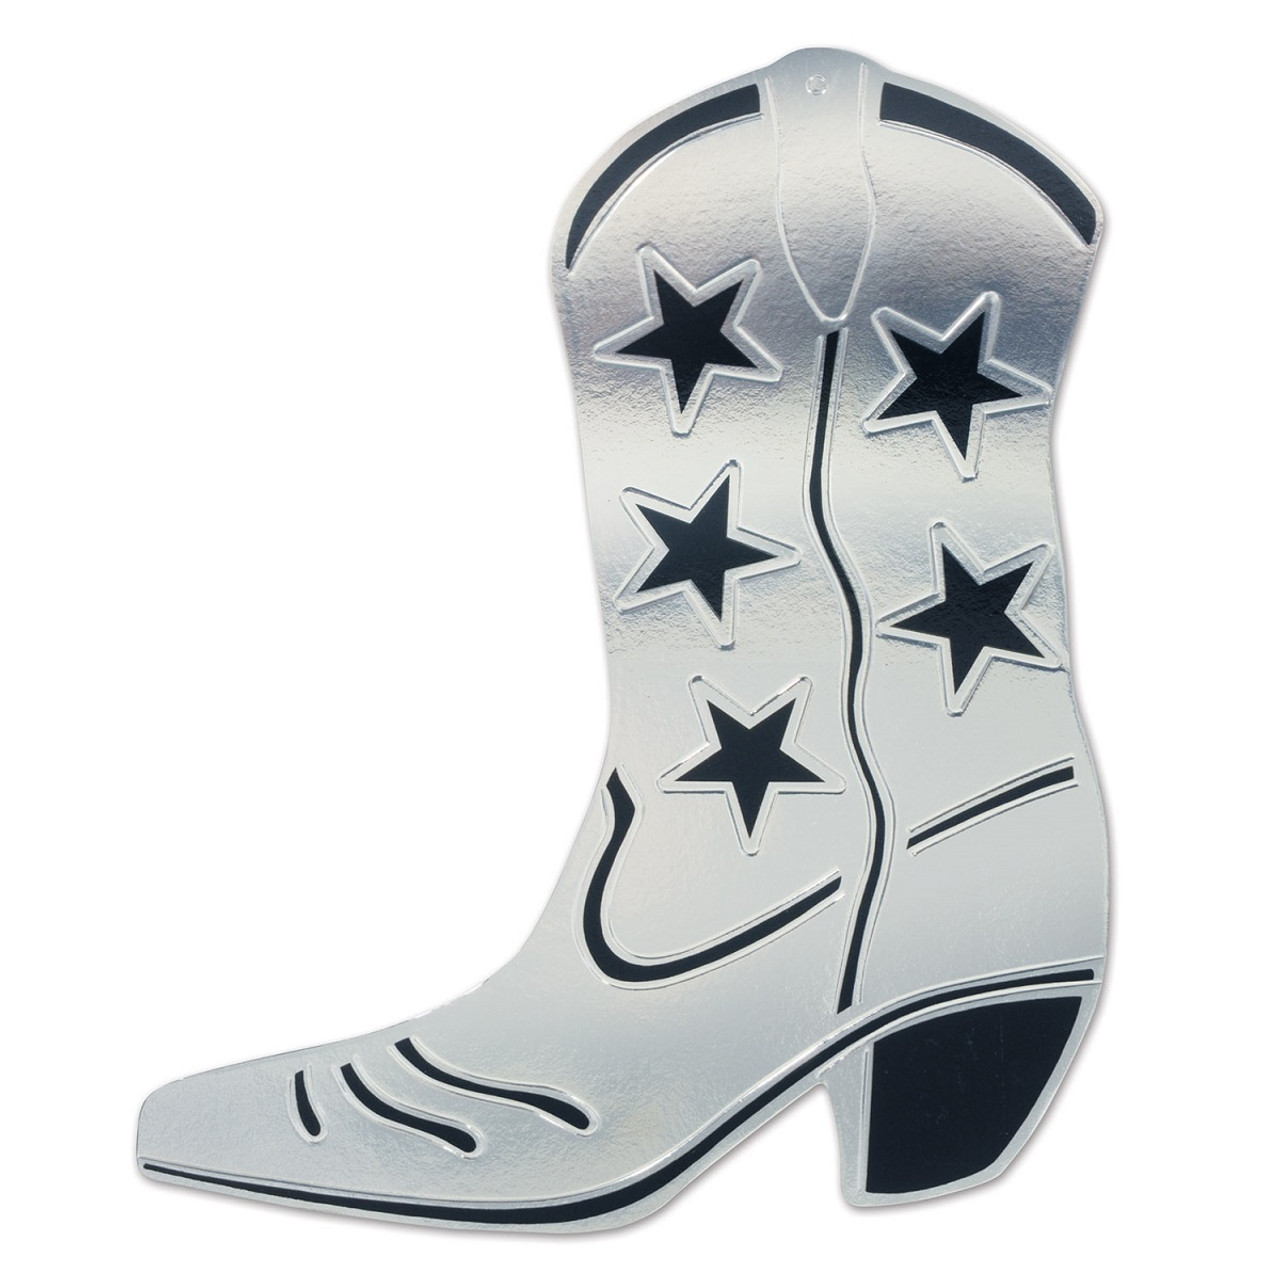 38dd3fbb8a8 Club Pack of 24 Silver and Black Foil Country Western Cowboy Boot  Silhouette Party Decorations 16